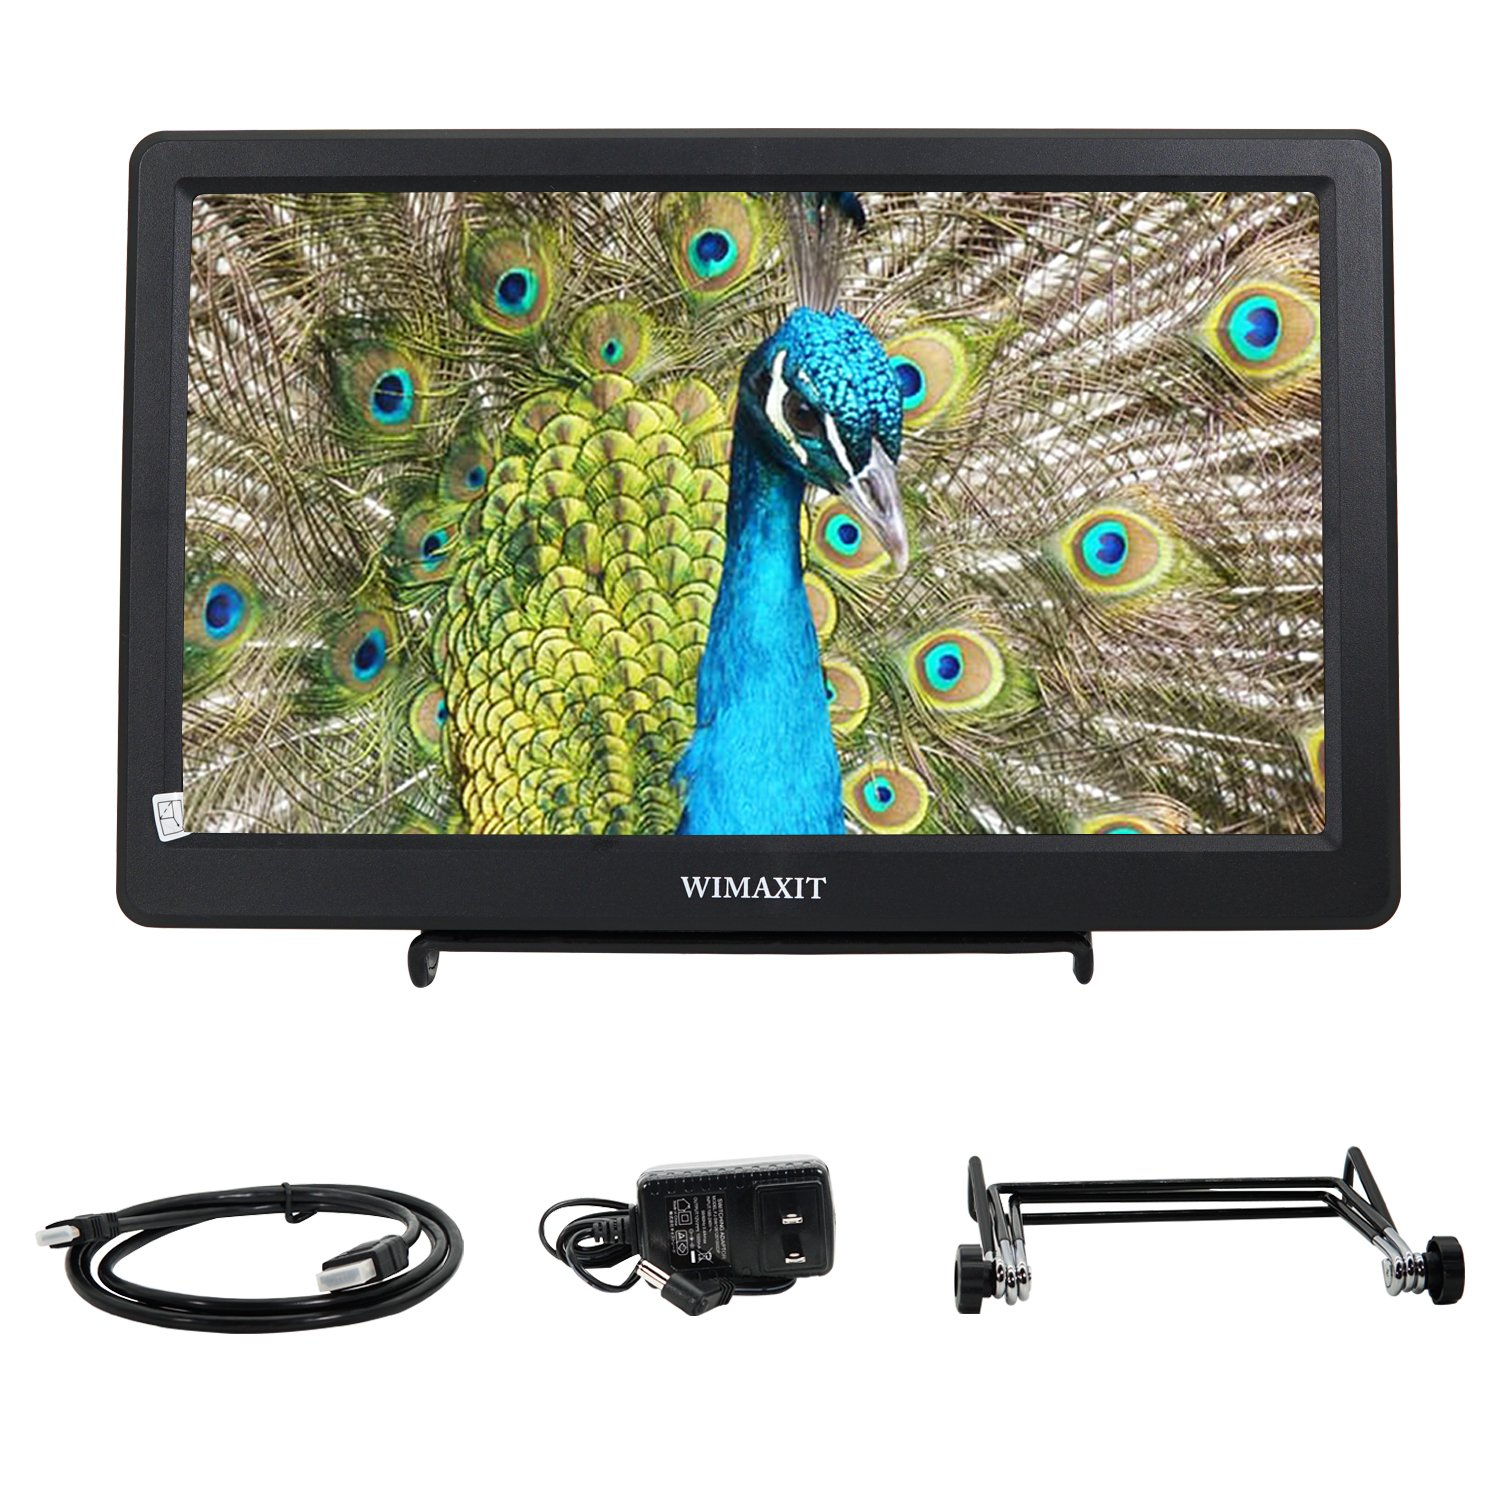 WIMAXIT 10.1 inch HDMI VGA Full HD IPS 1920x1080 Resolution Monitor for PC,Camera,CCTV Surveillance Monitors by WIMAXIT